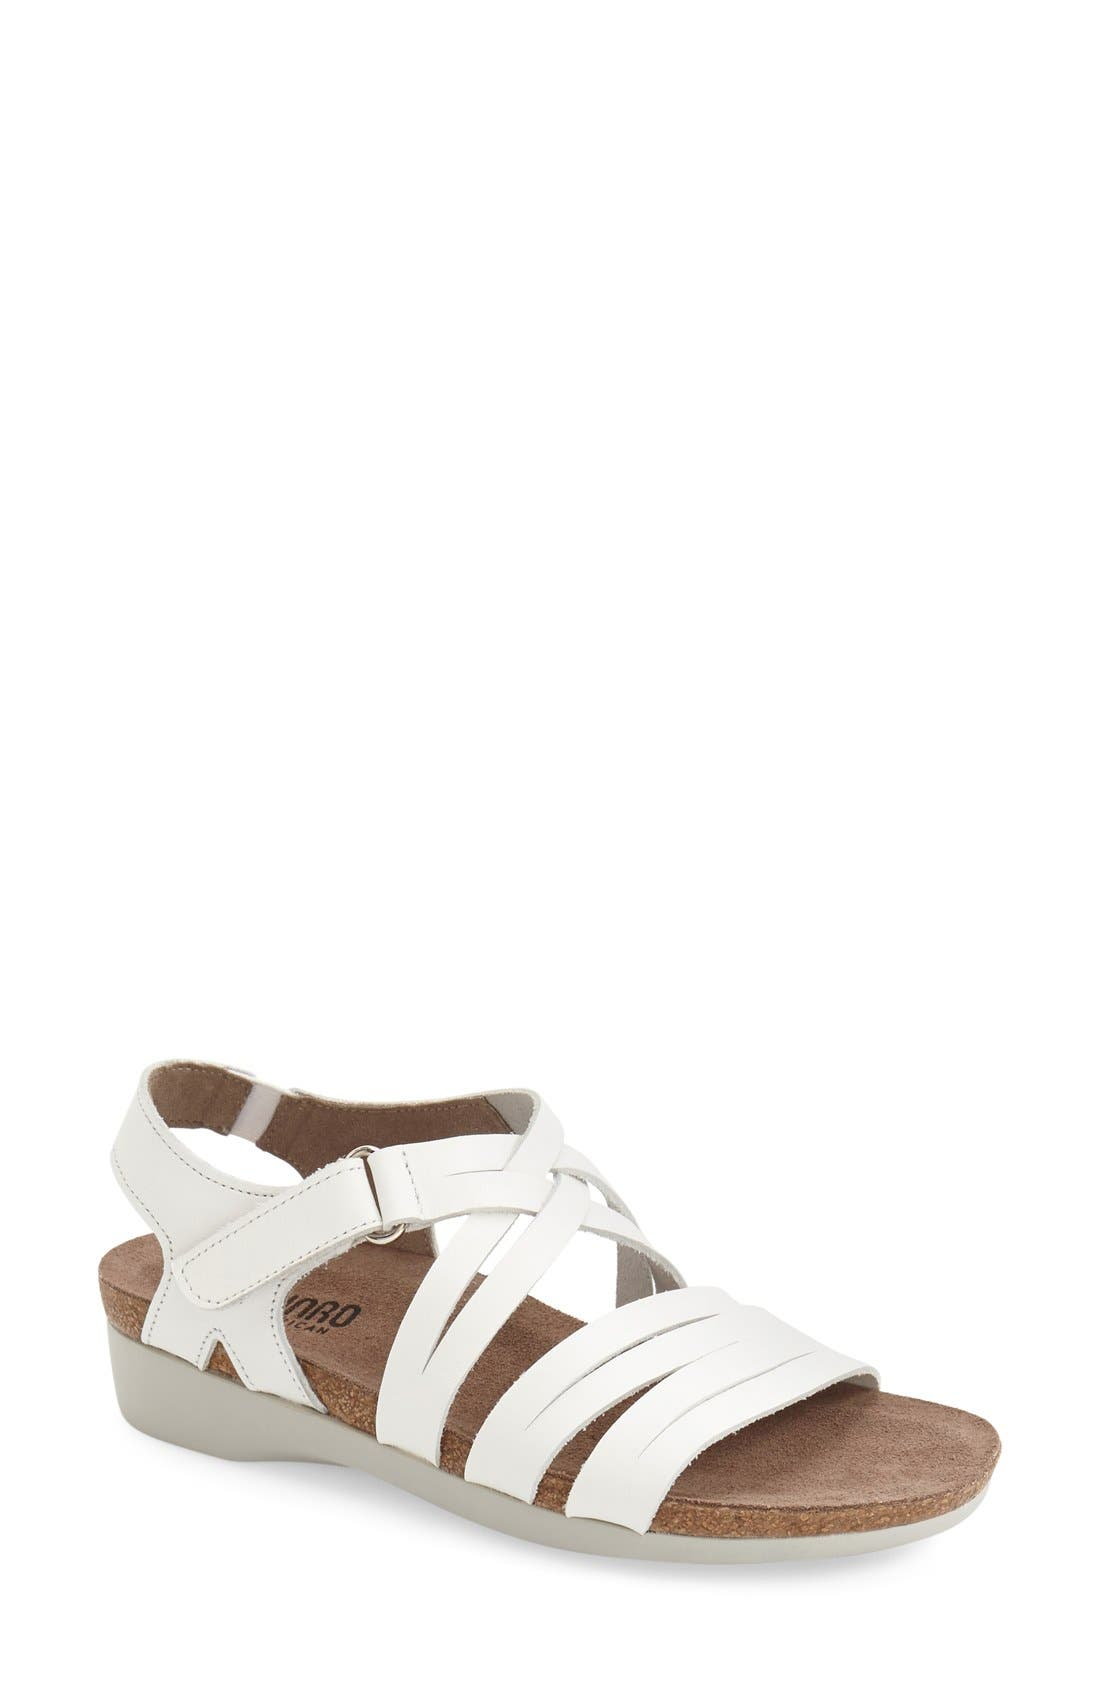 'Kaya' Strappy Sandal,                         Main,                         color, White Leather